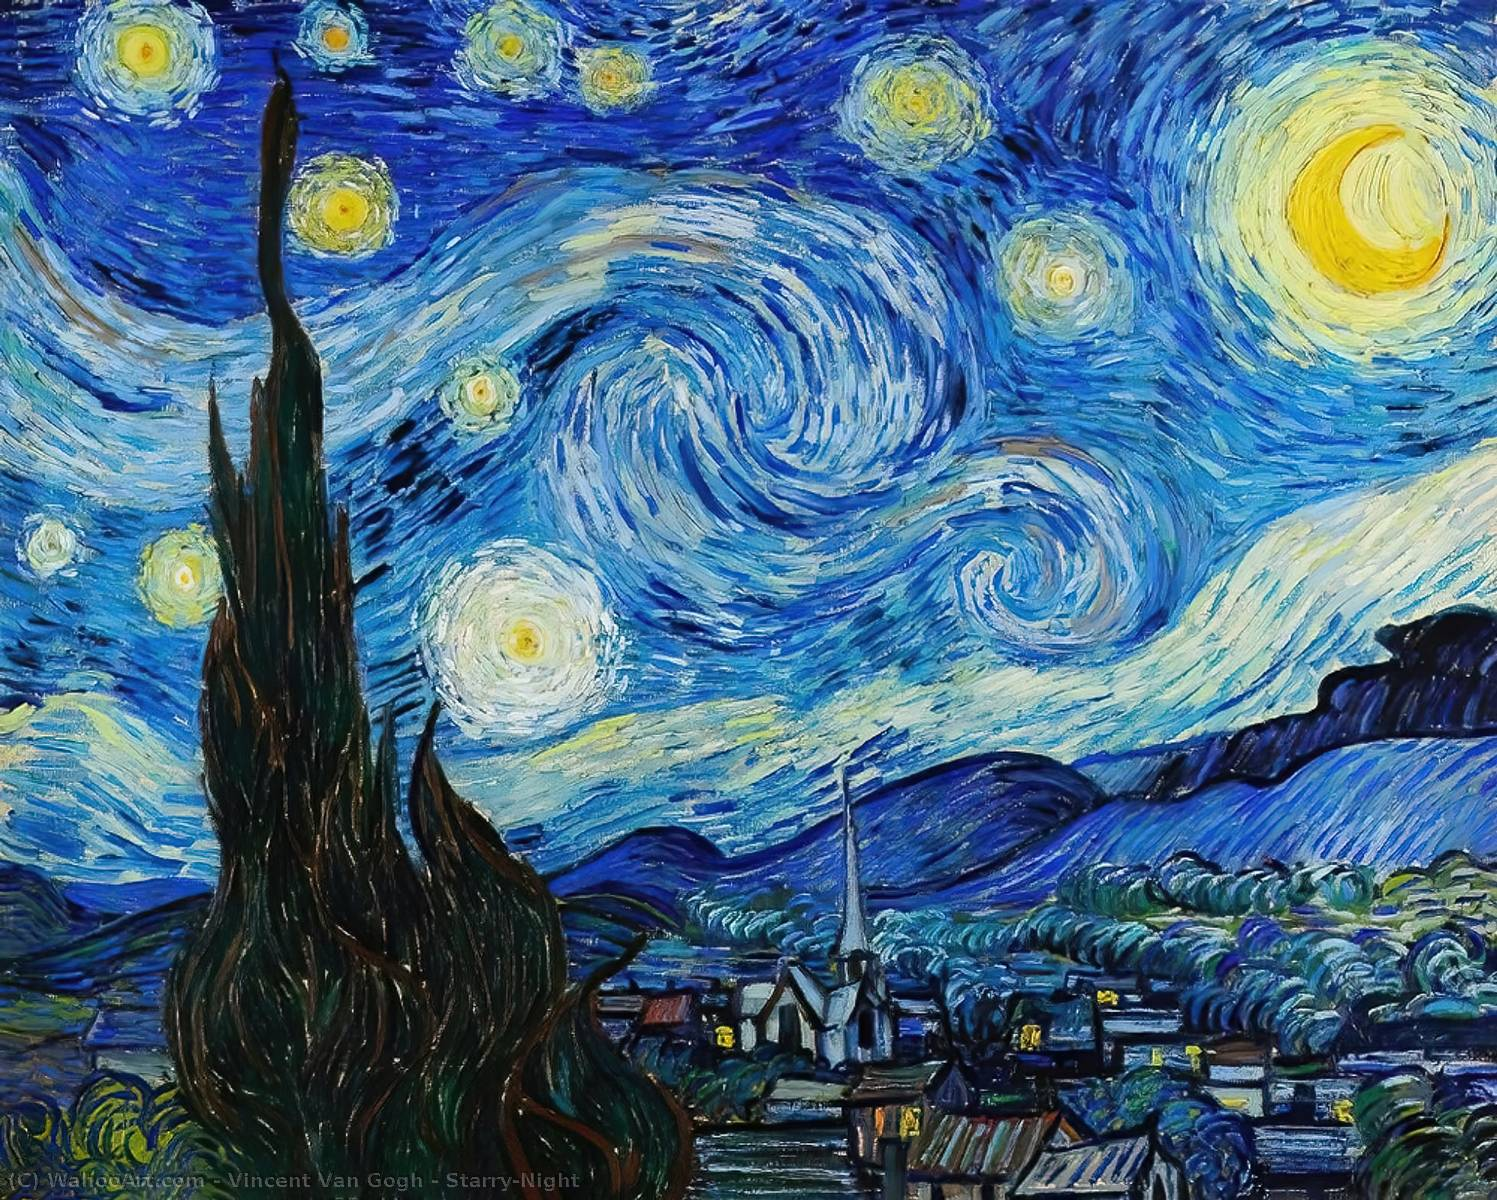 Order Paintings Reproductions | Starry-Night by Vincent Van Gogh | Most-Famous-Paintings.com